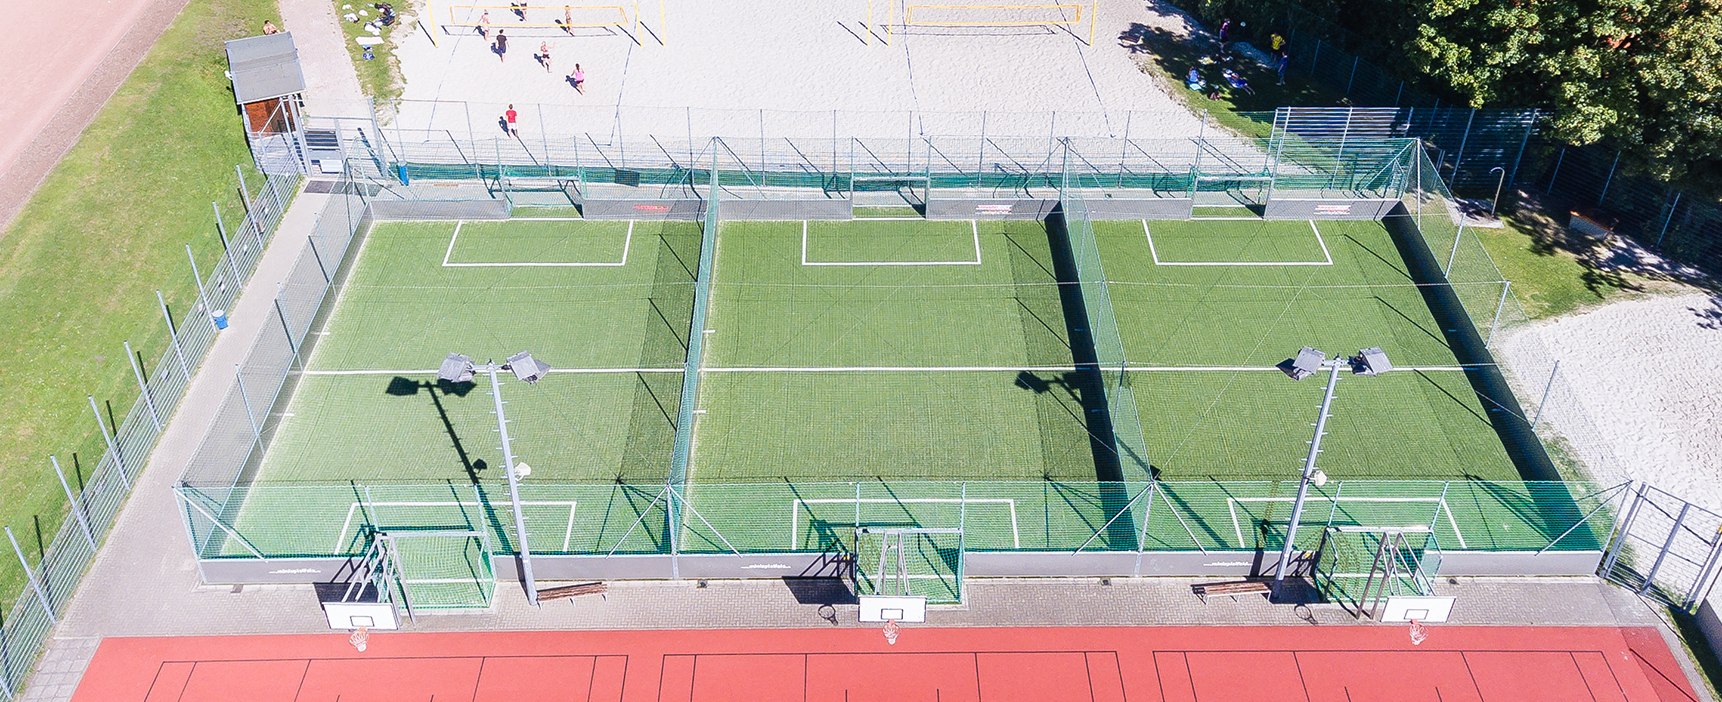 Aerial view of the SOCCERBOX